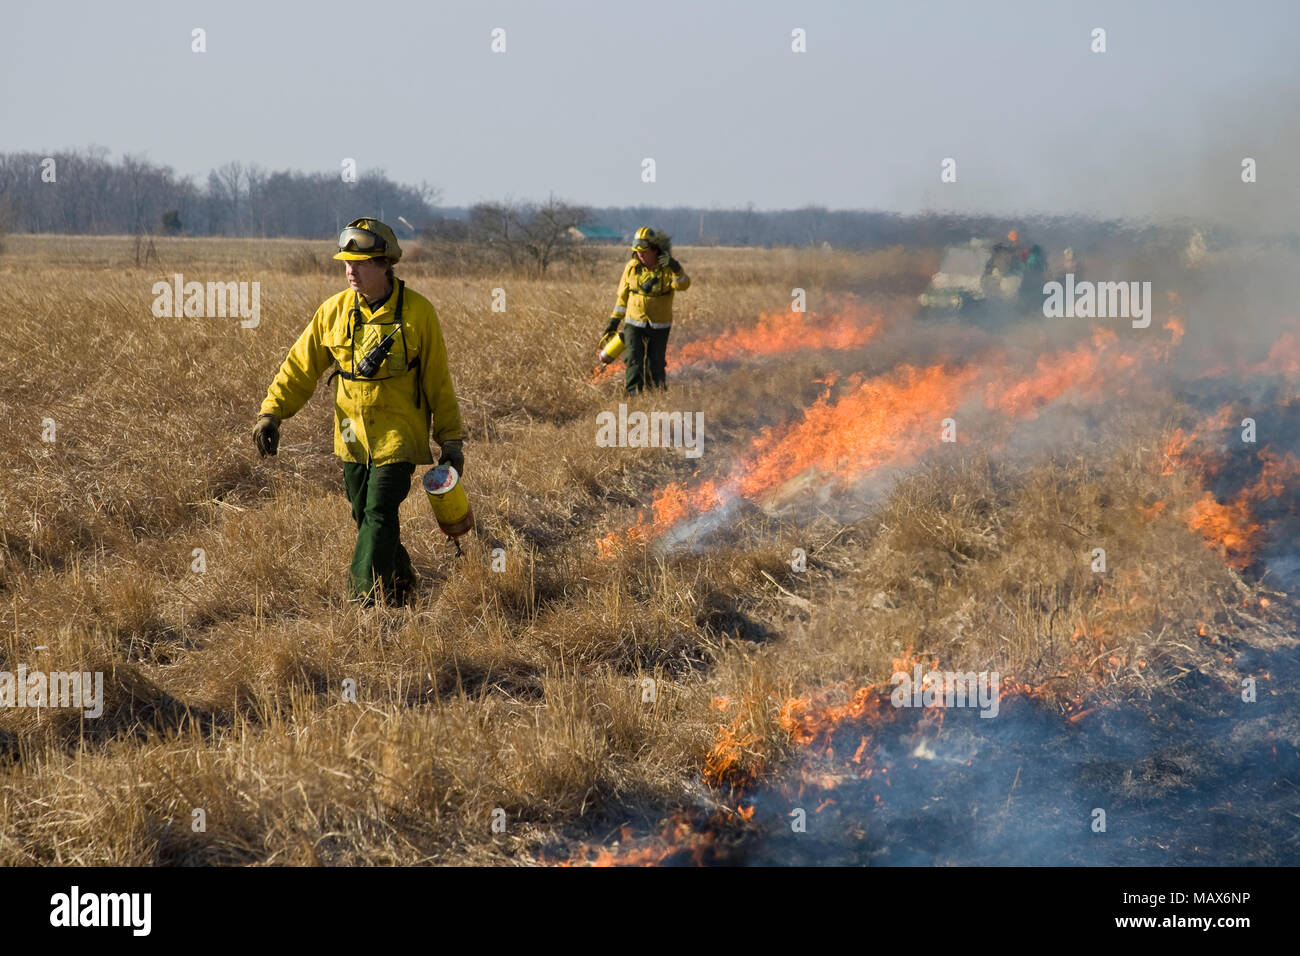 Dnr Stock Photos & Dnr Stock Images - Alamy